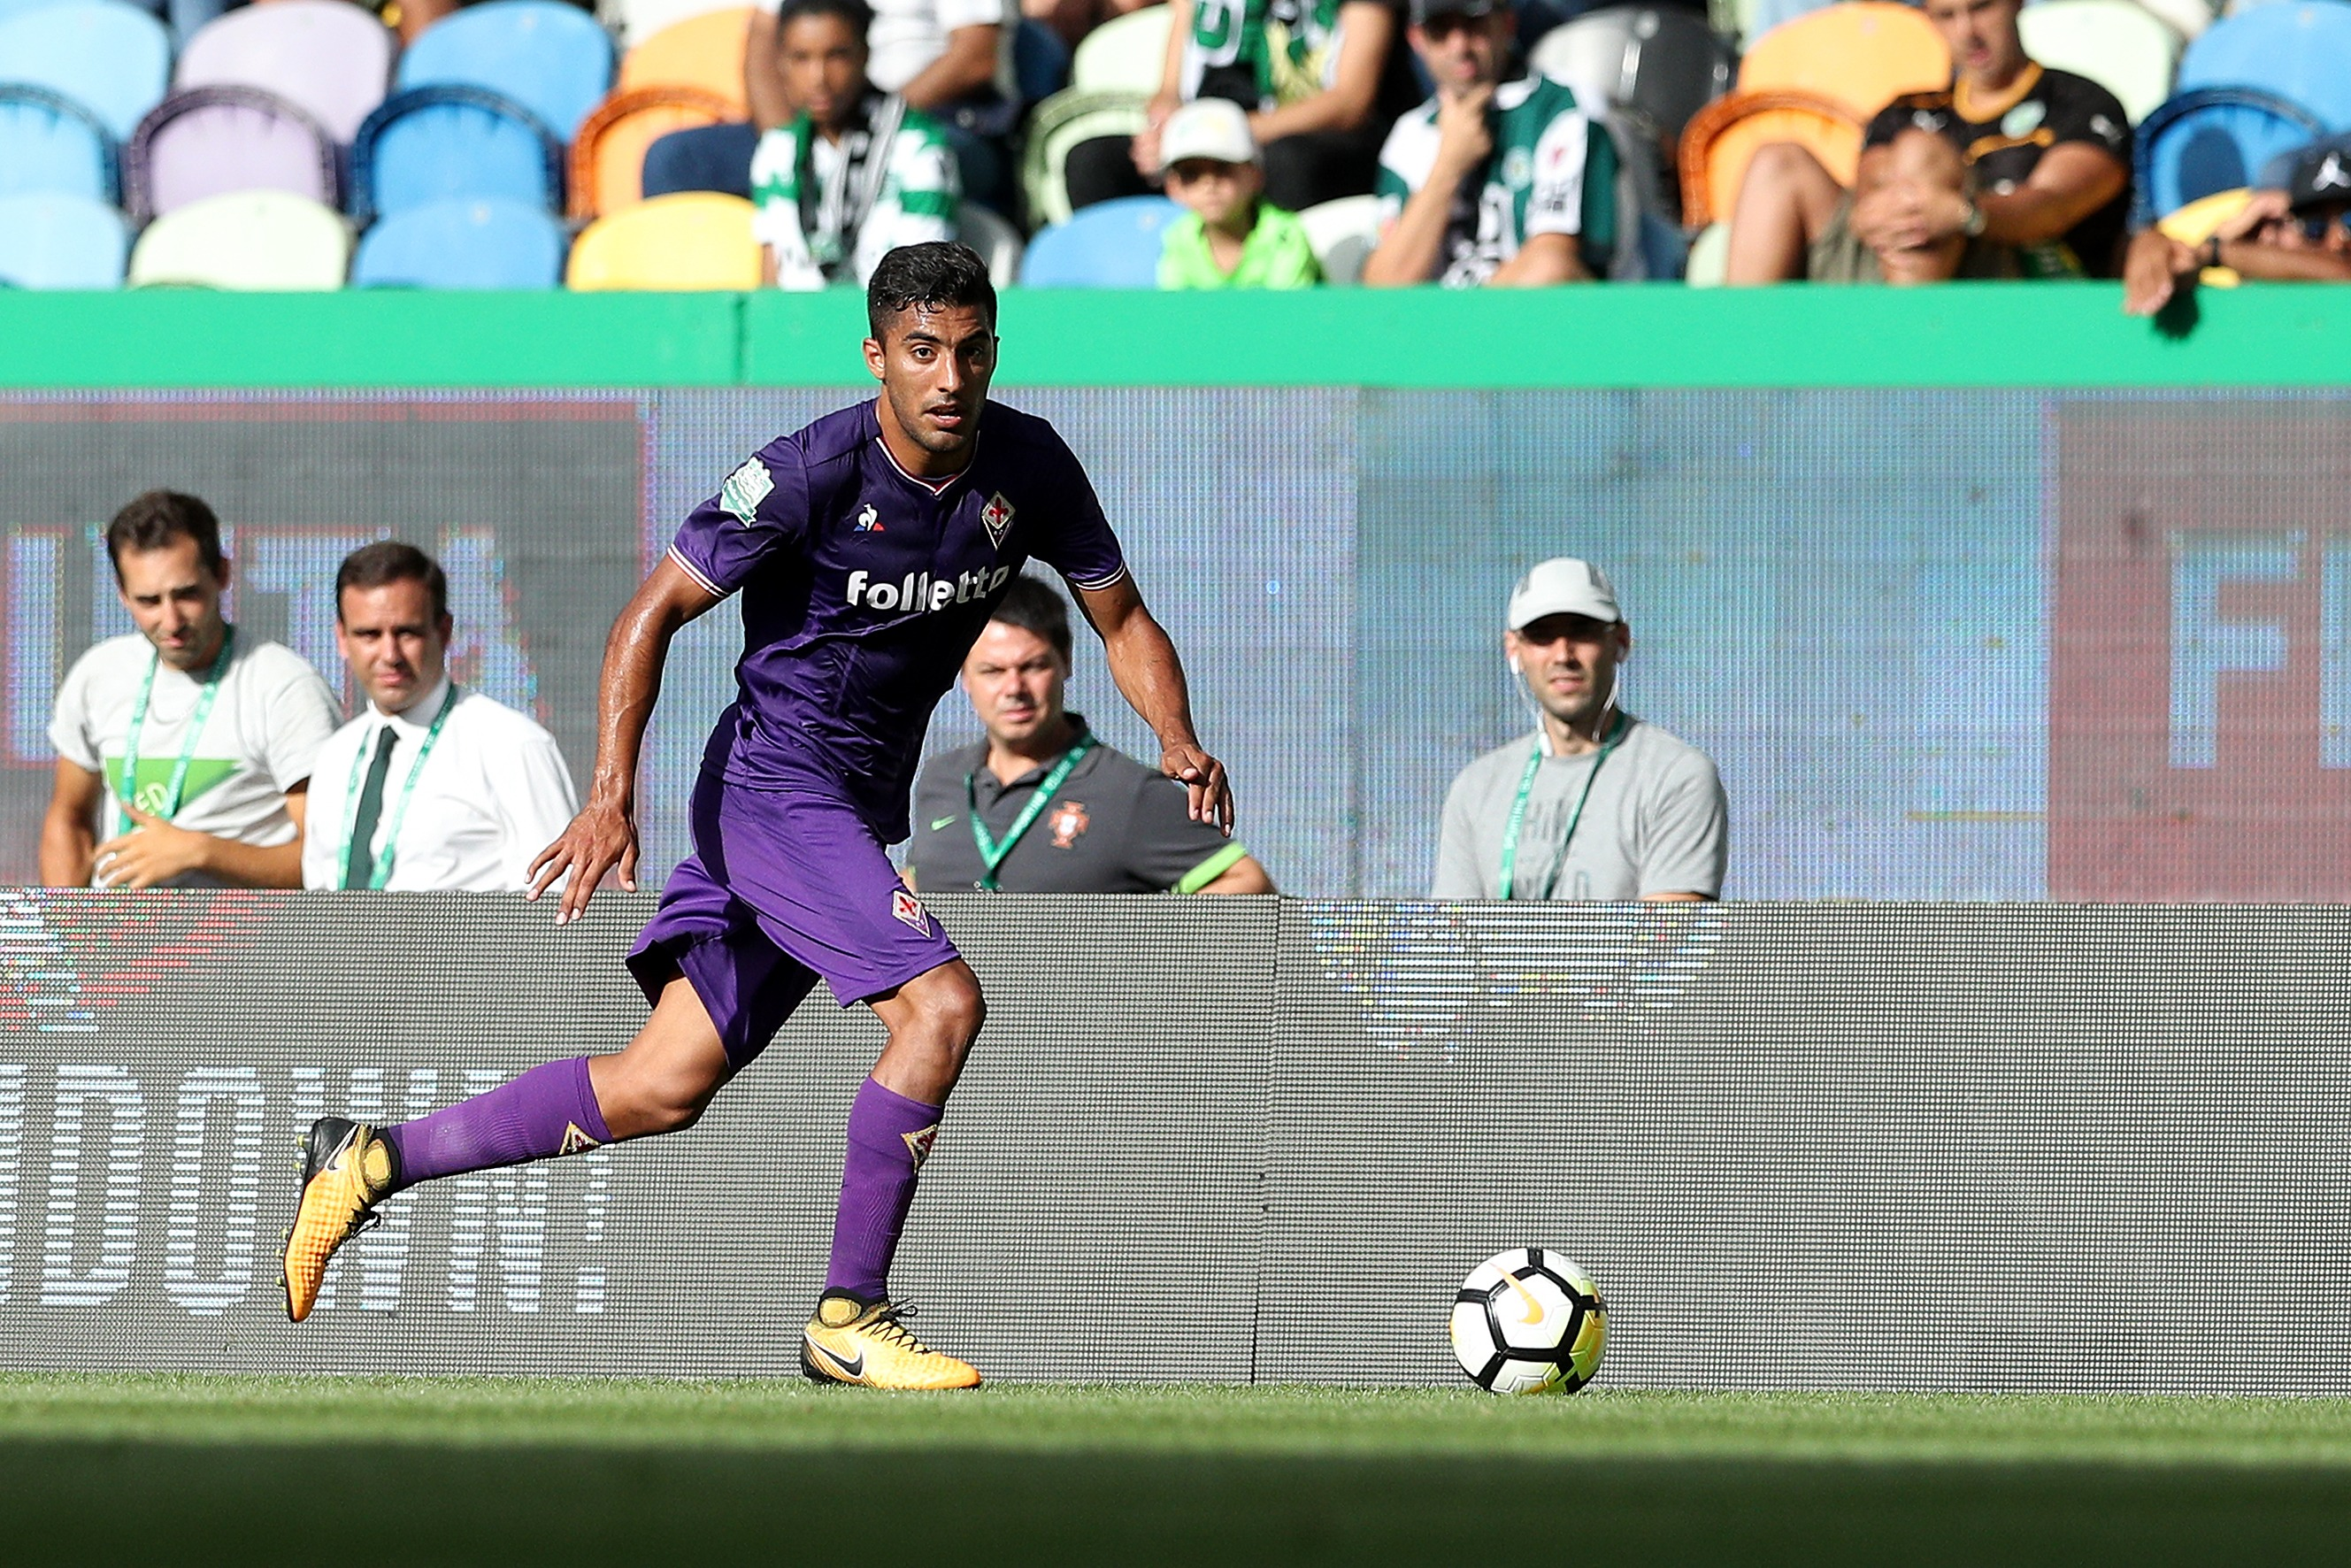 Sporting CP v Fiorentina - Pre-Season Friendly